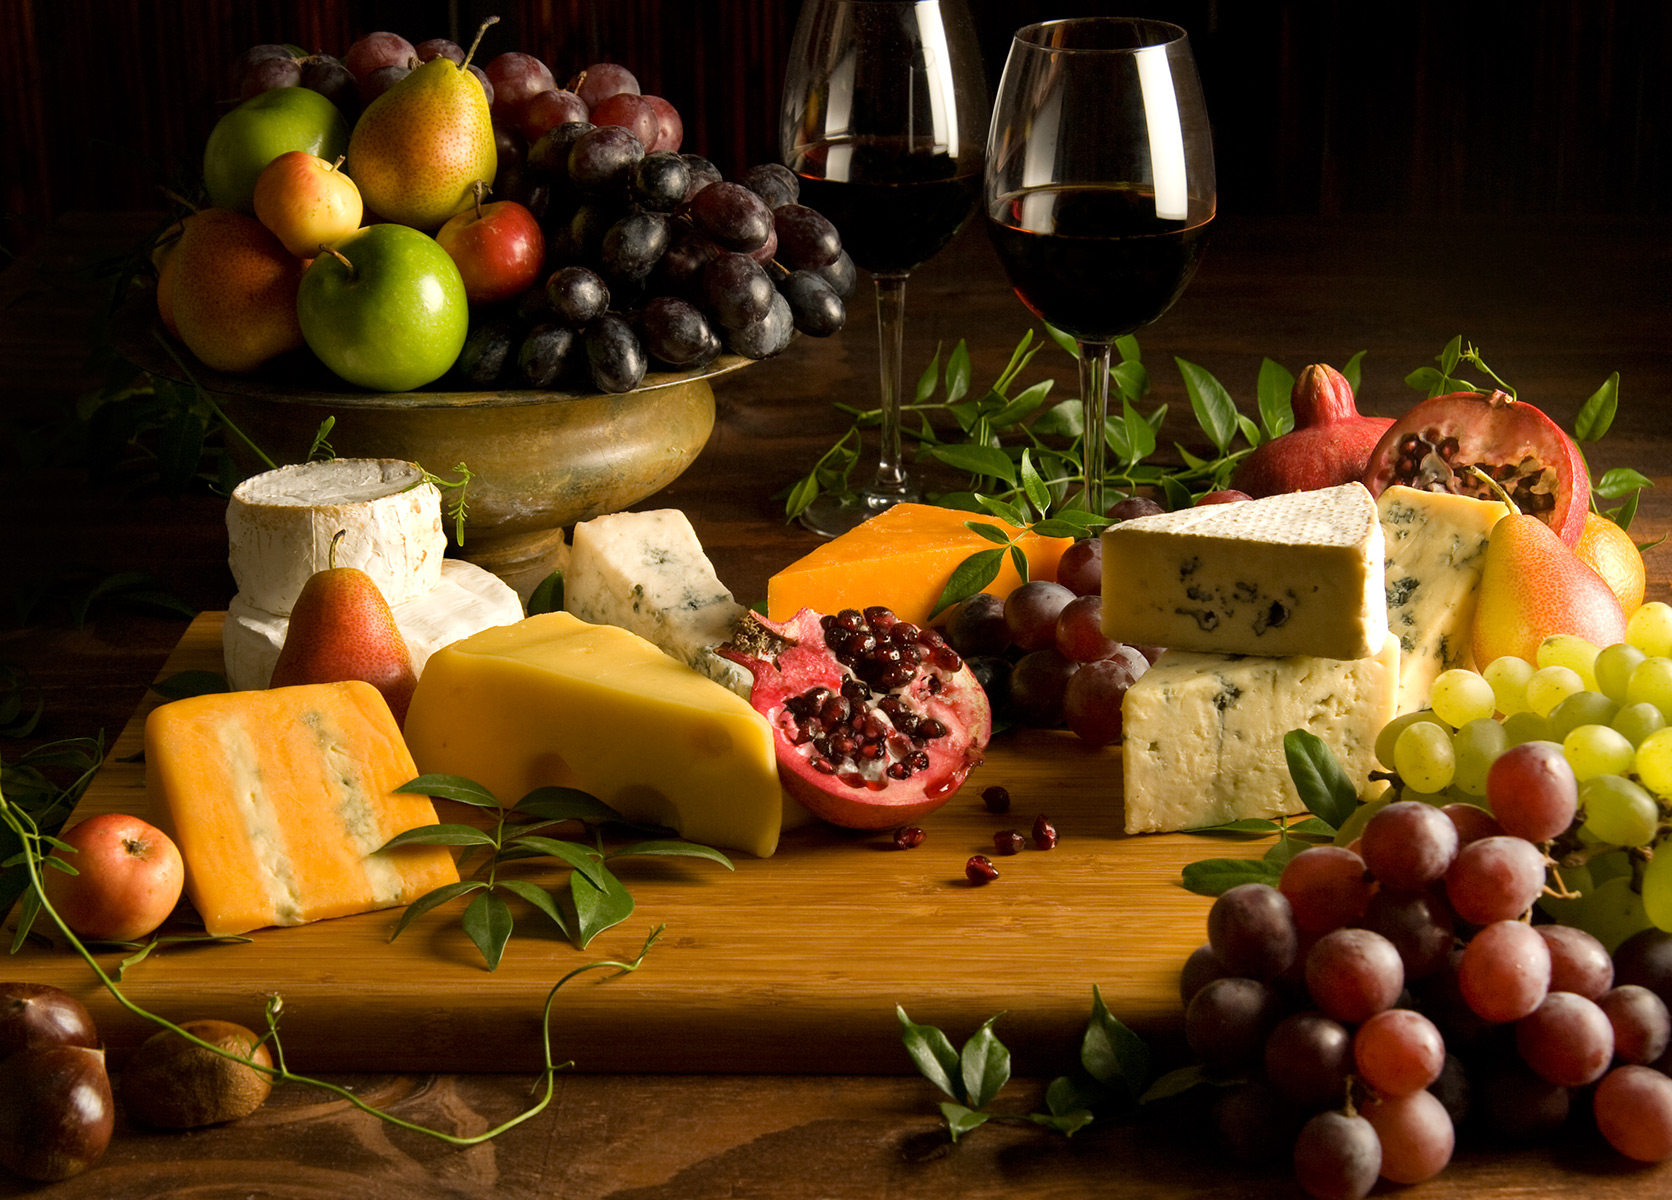 Cheese board-Carl Kravats food photographer